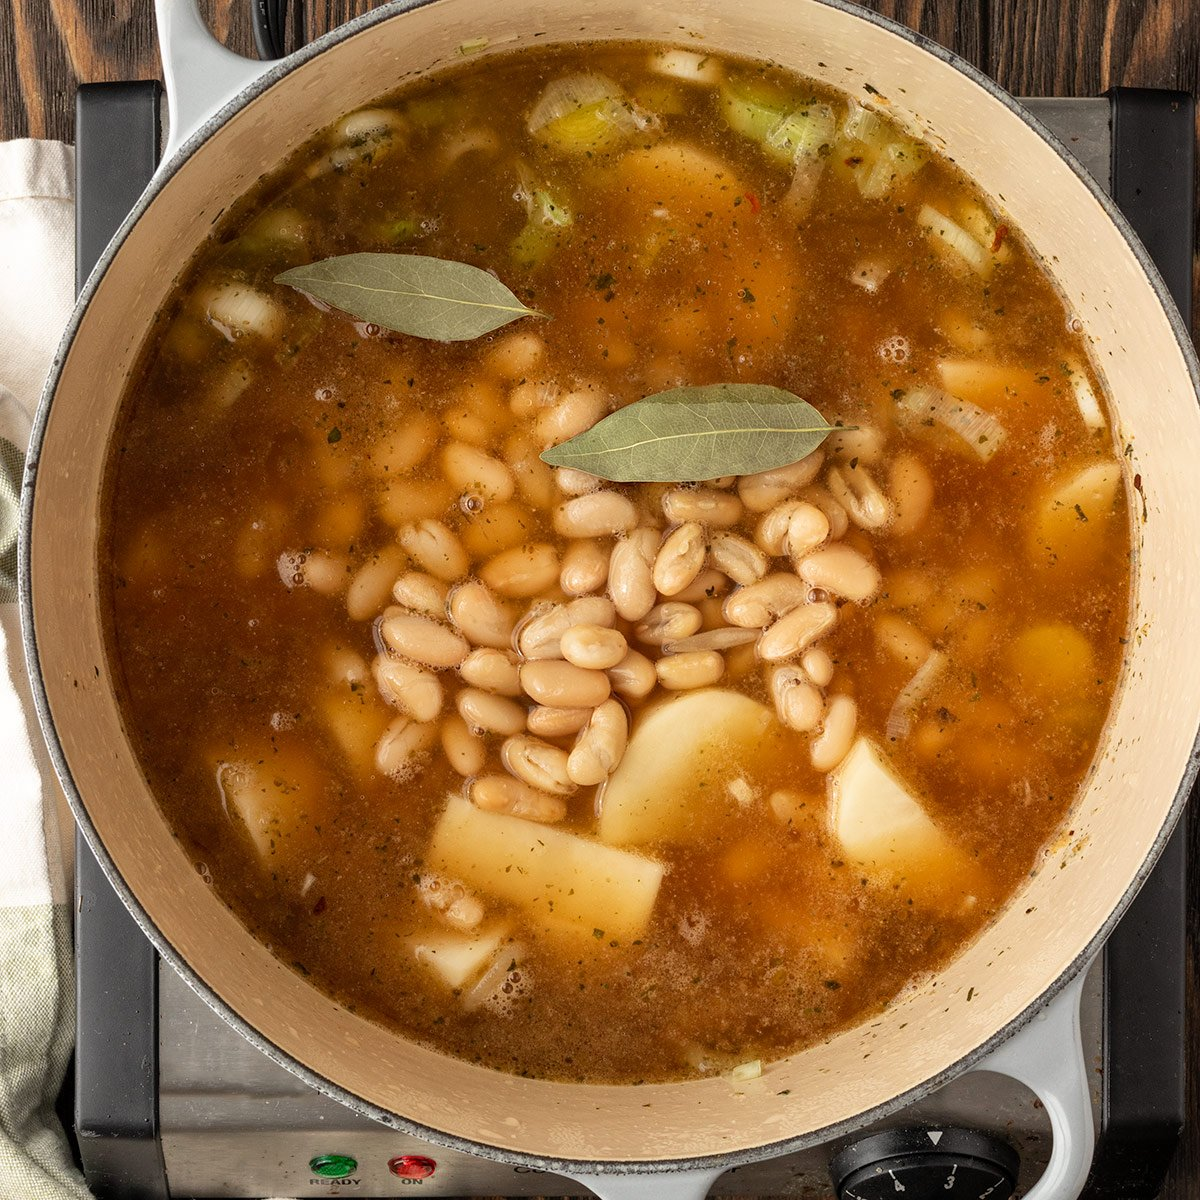 beans, broth, potatoes, and bay leaves being added to soup